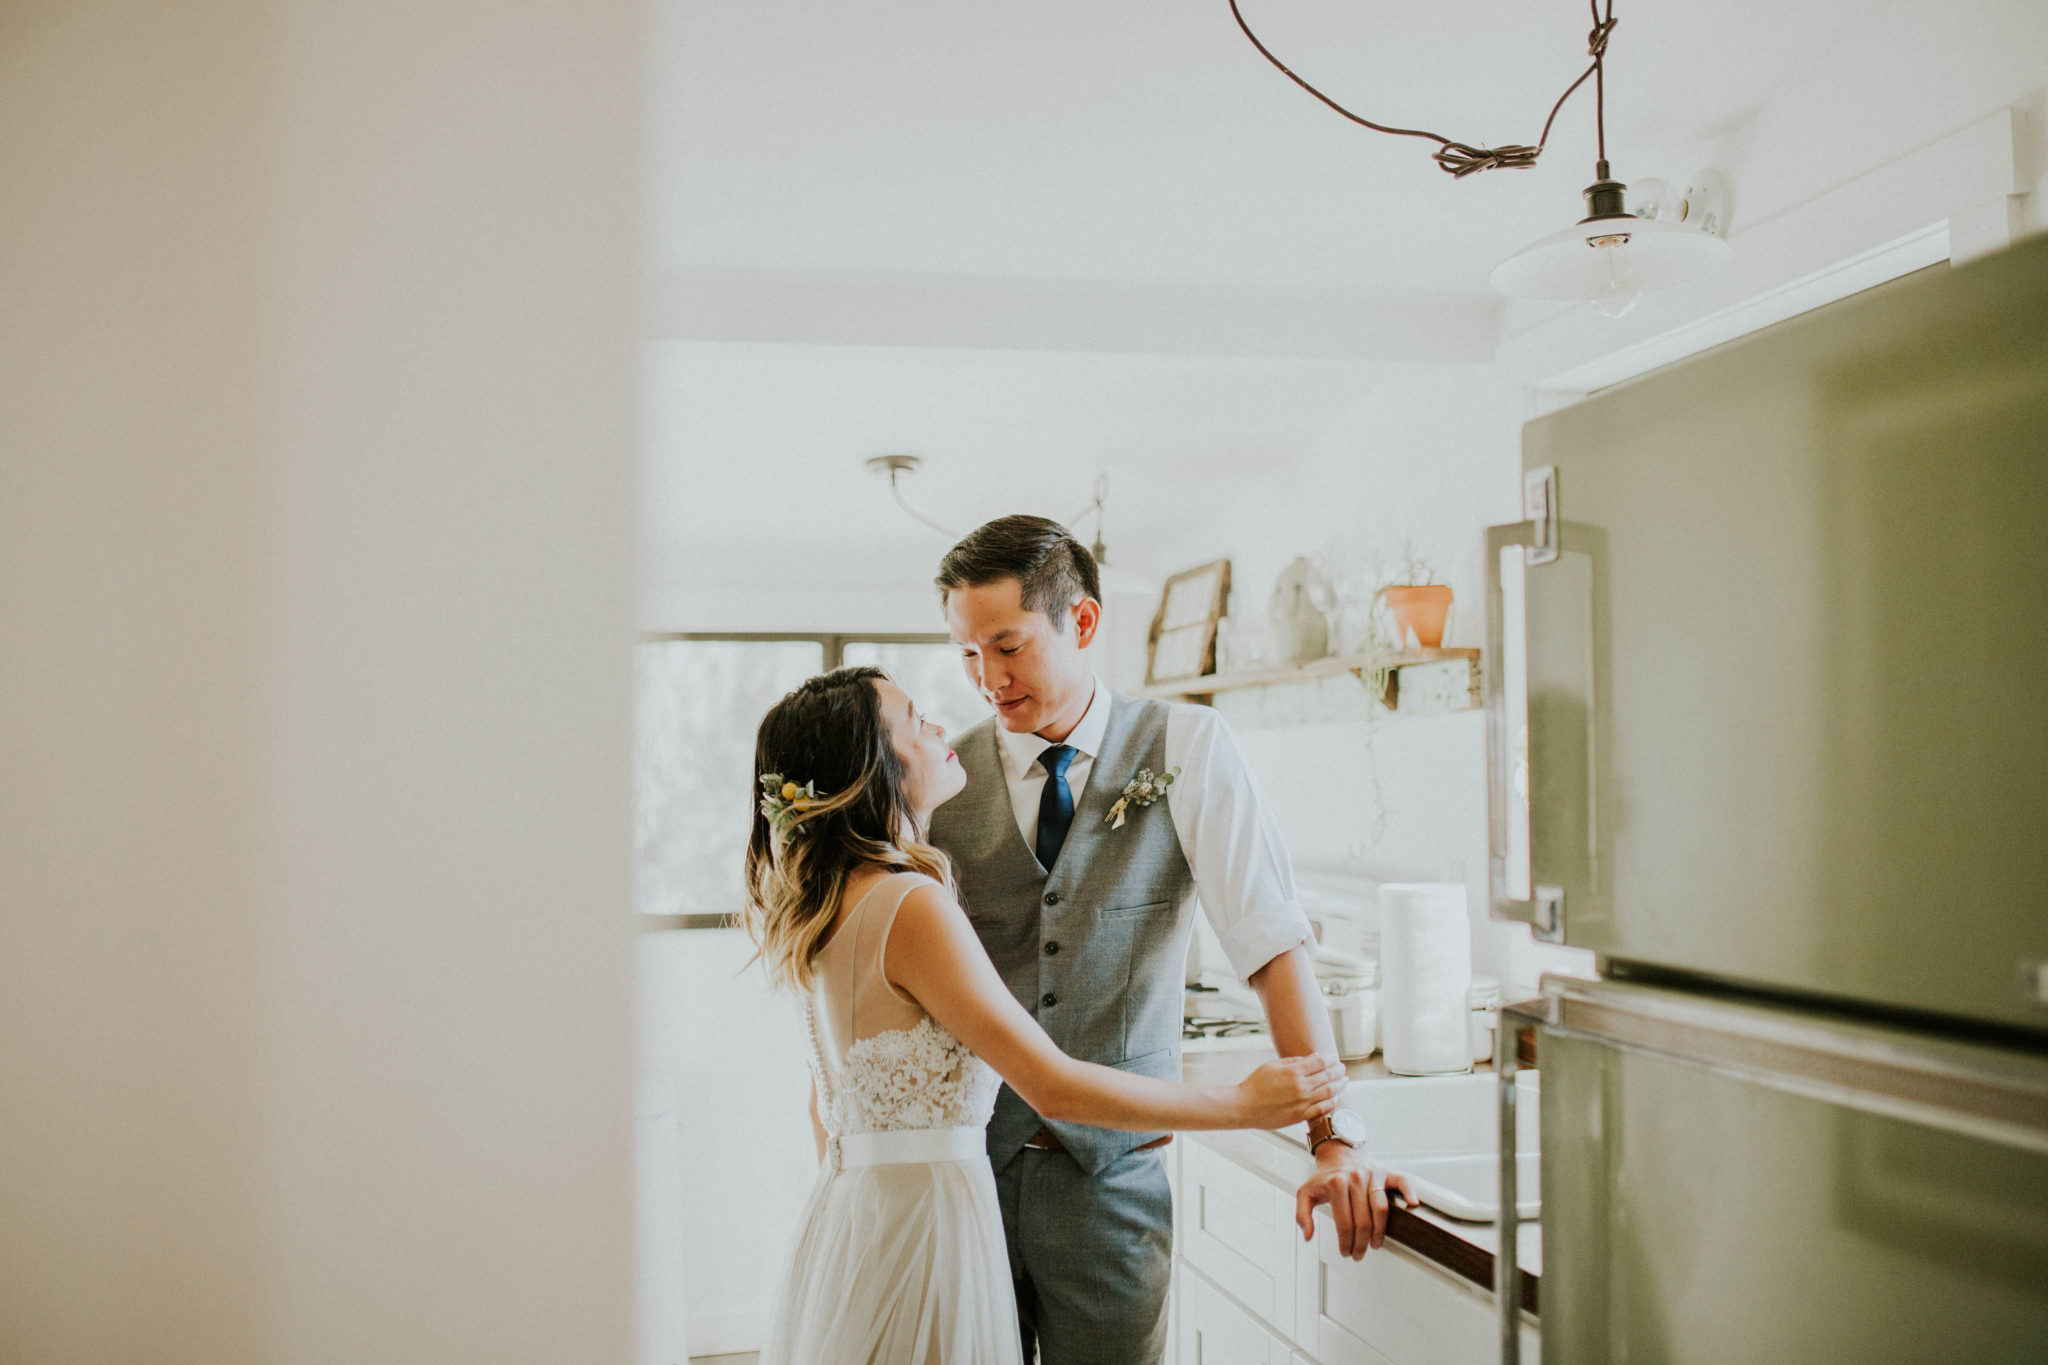 Mandy & Joey Joshua Tree Elopement California Wedding Photographer-67